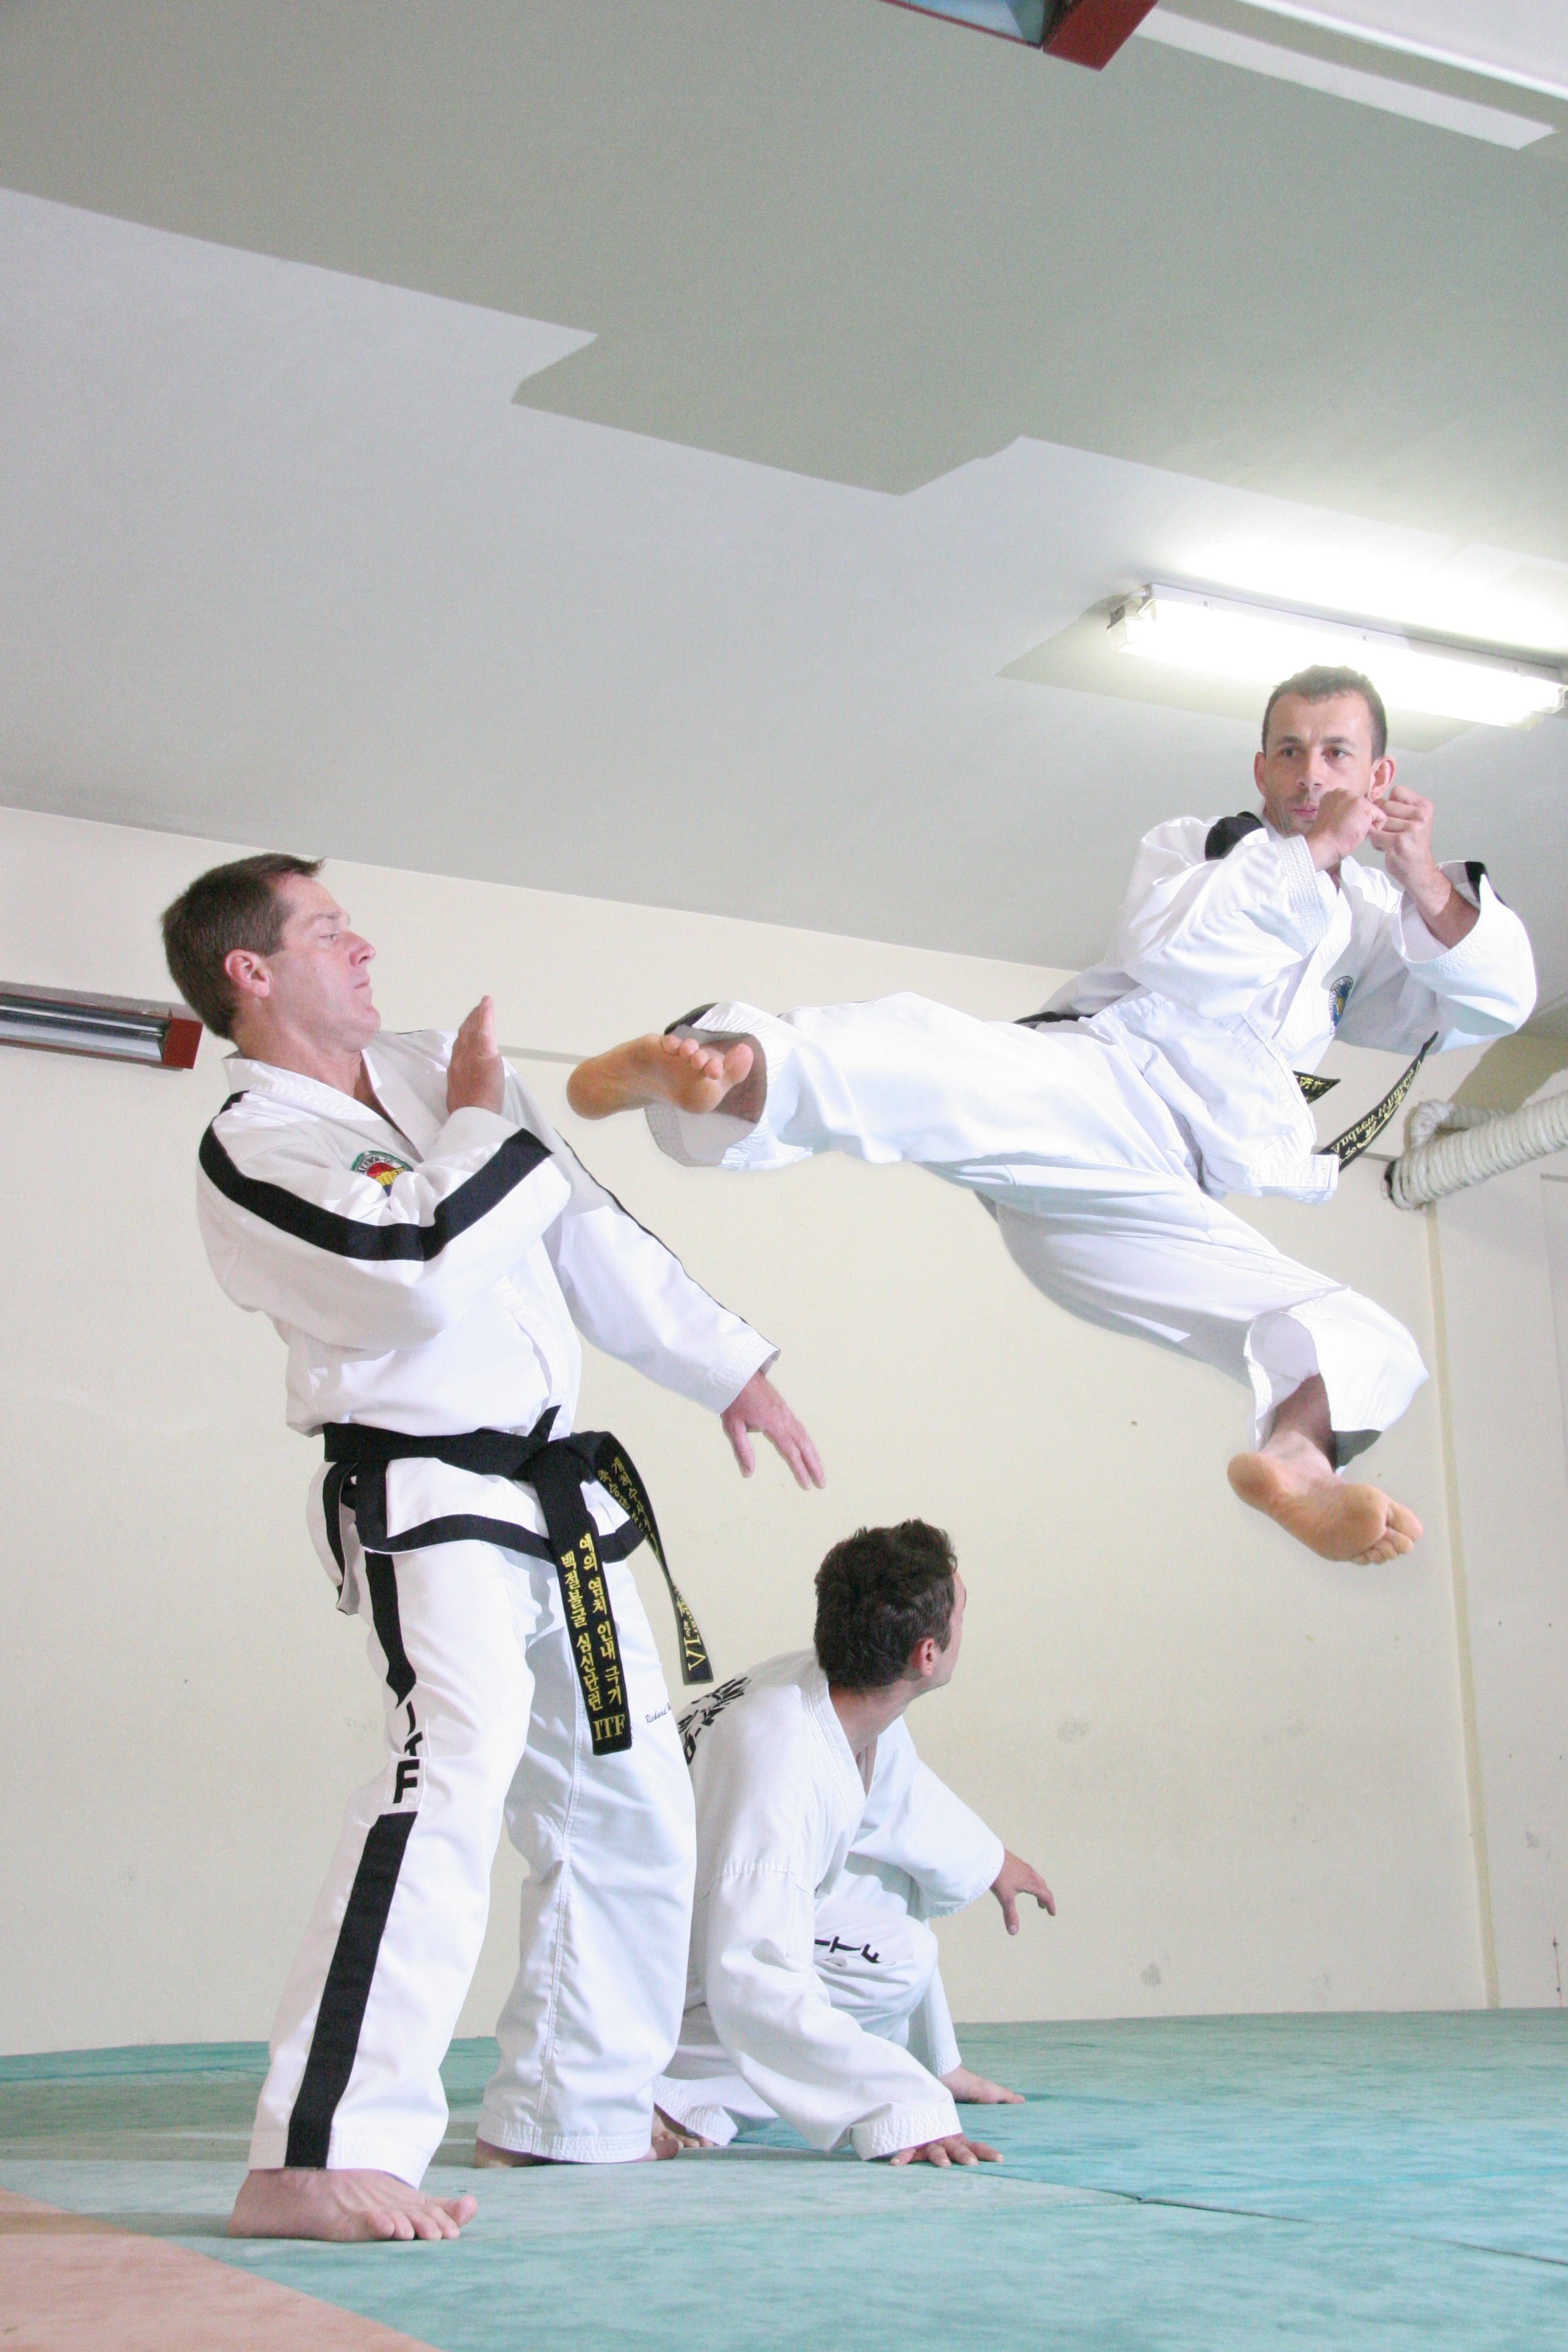 Taekwon-Do kicking